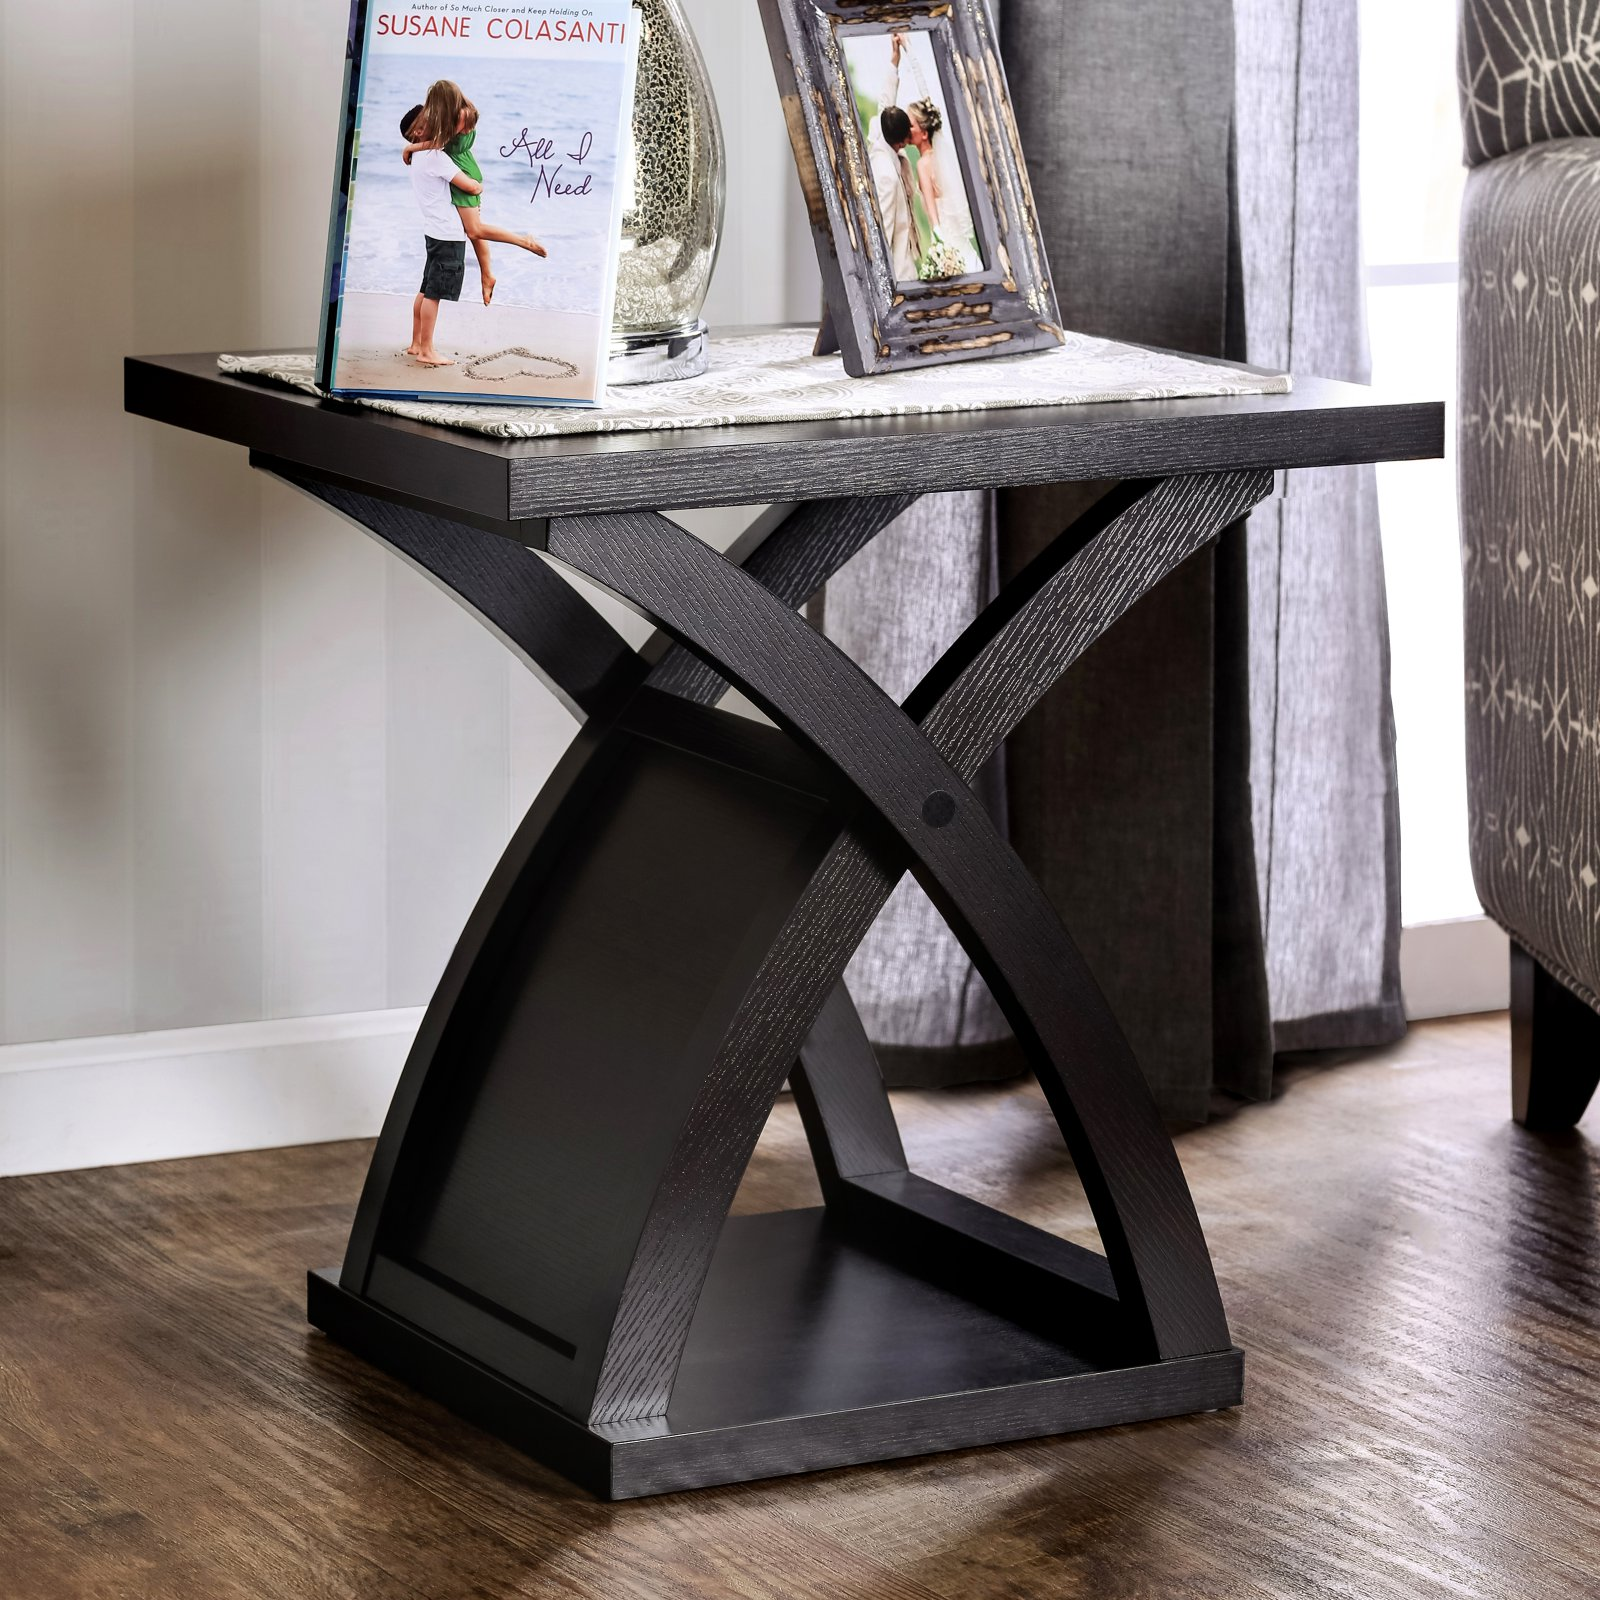 Furniture of America Monte Accent End Table Espresso by Enitial Lab